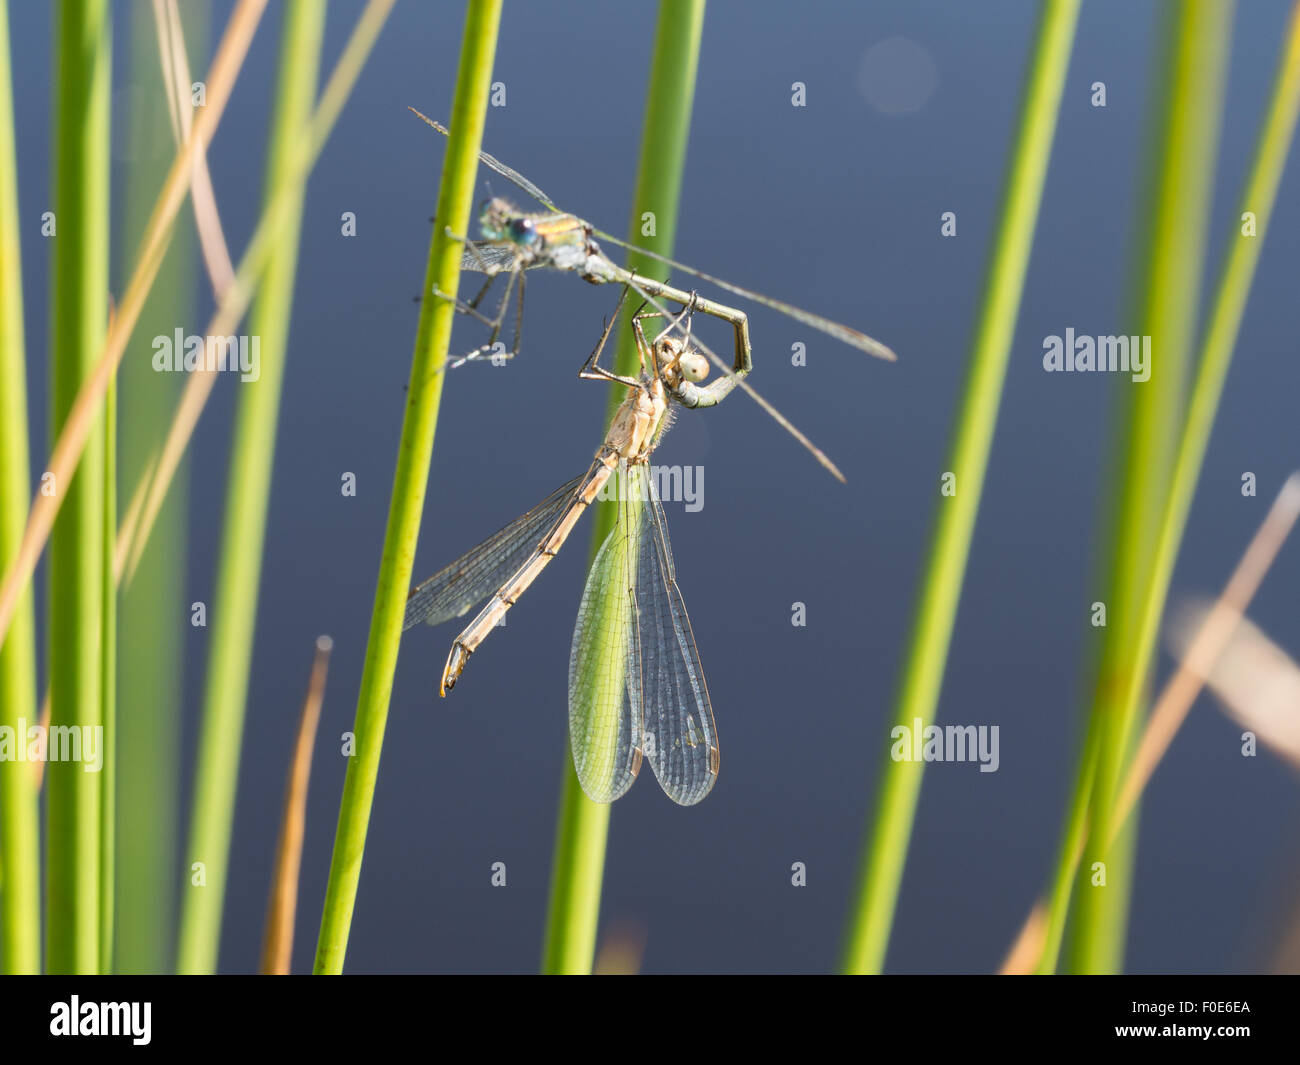 Dragonflies at the edge of a pond on the North York Moors - Stock Image